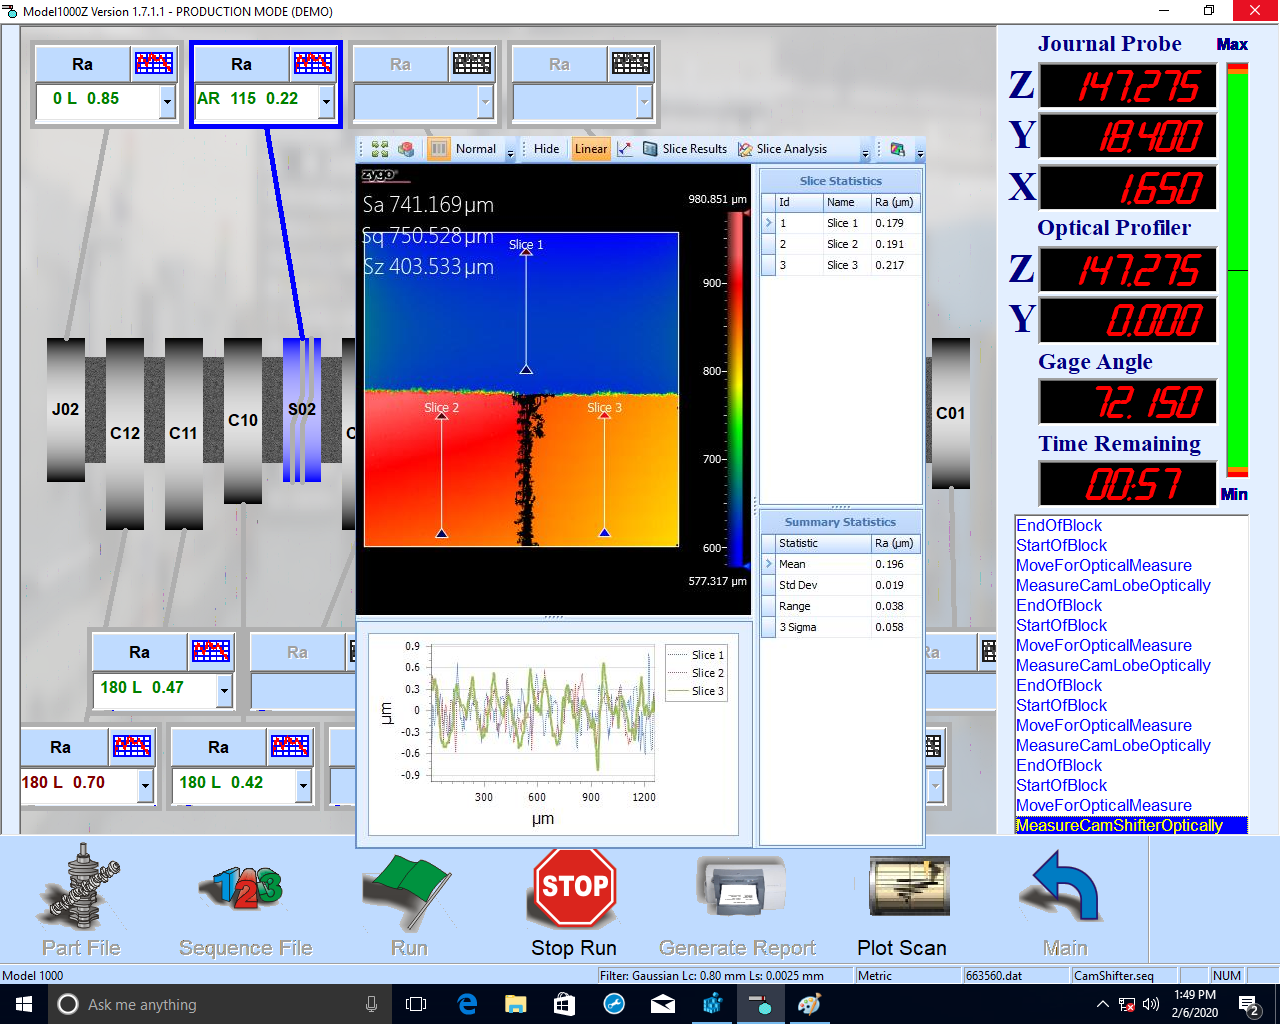 Surface Roughness Software enables manufacturers to acquire and analyze 3-D optical surface scans via Zygo 3-D white-light interferometers